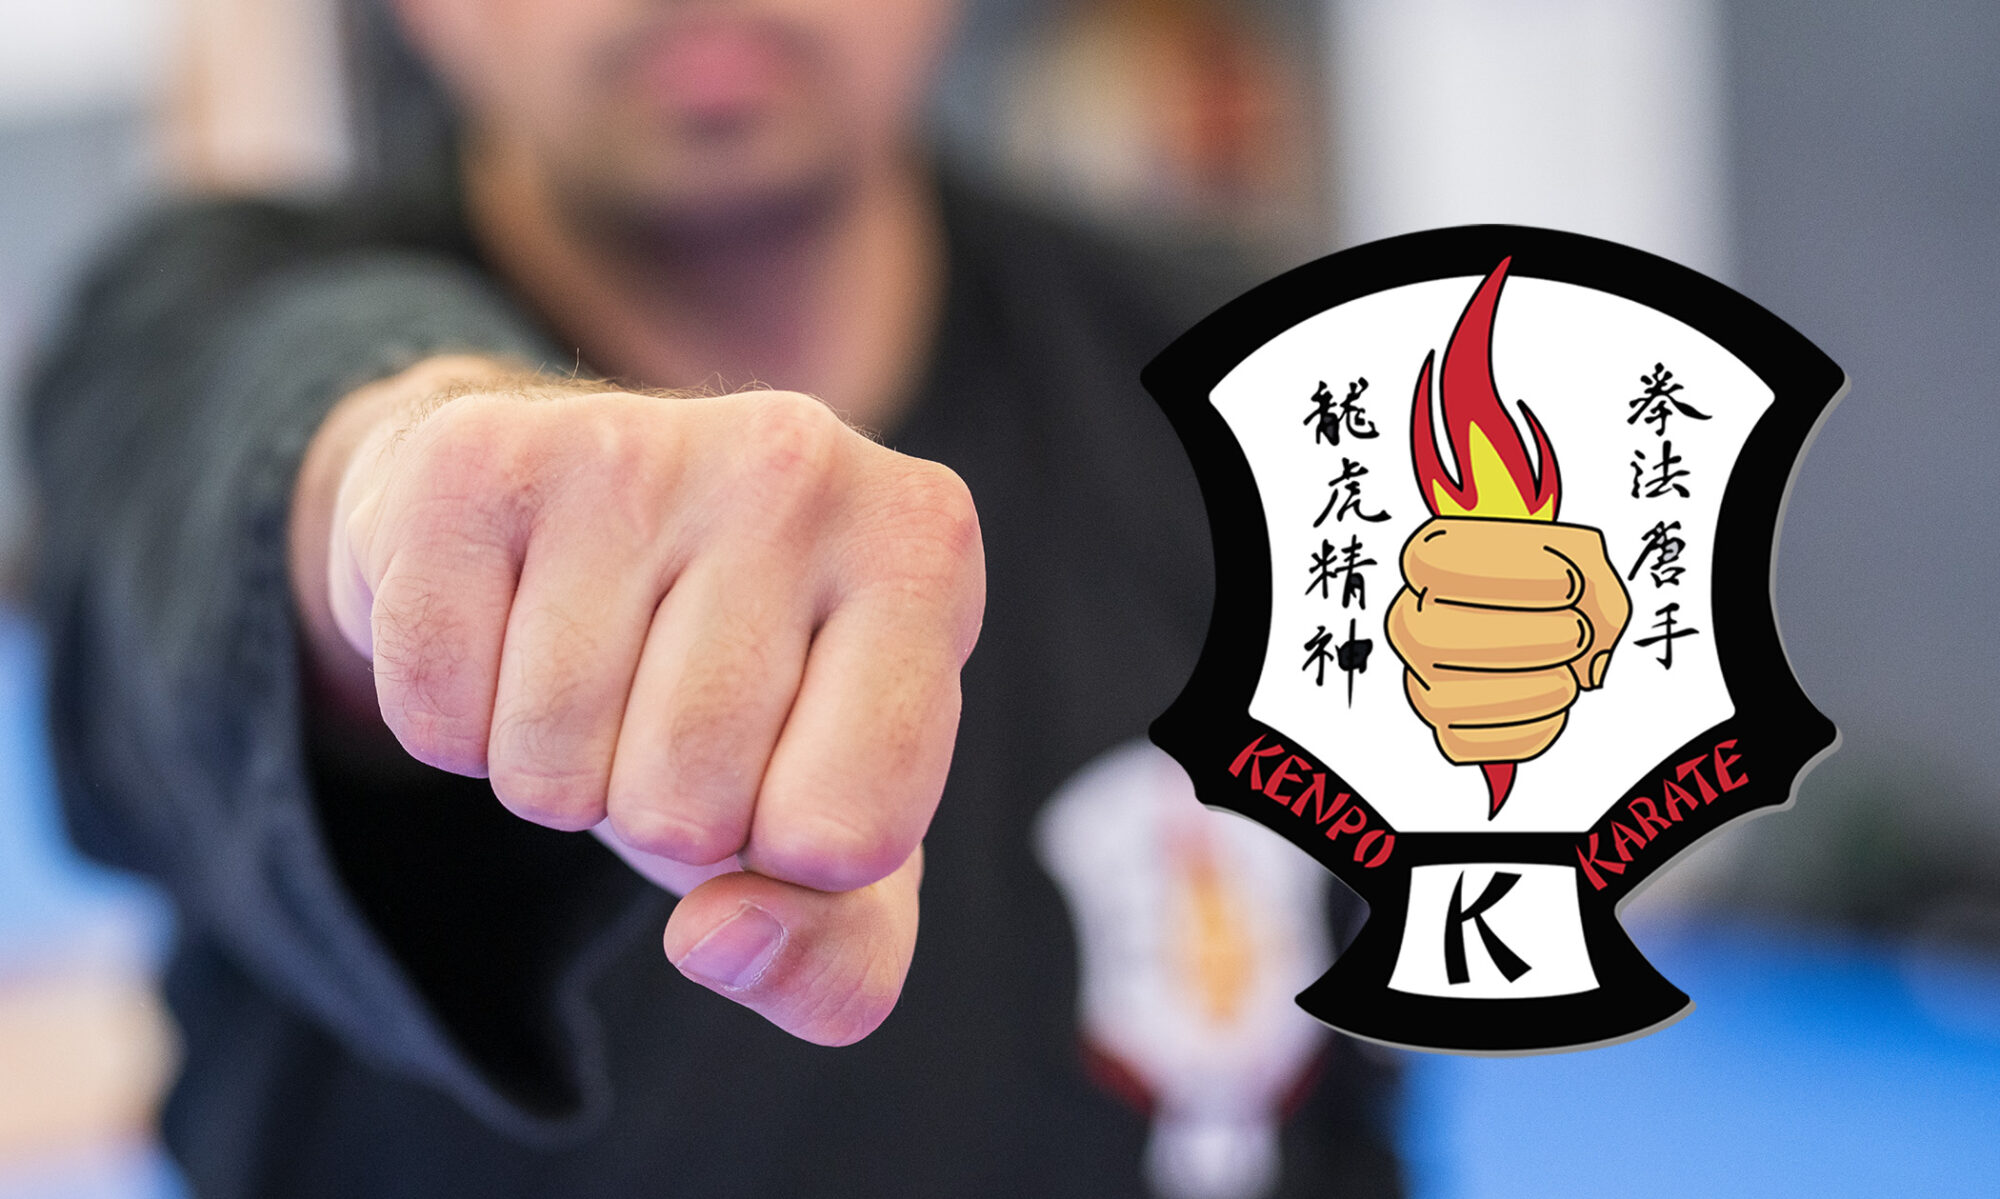 flamingfistkenpo